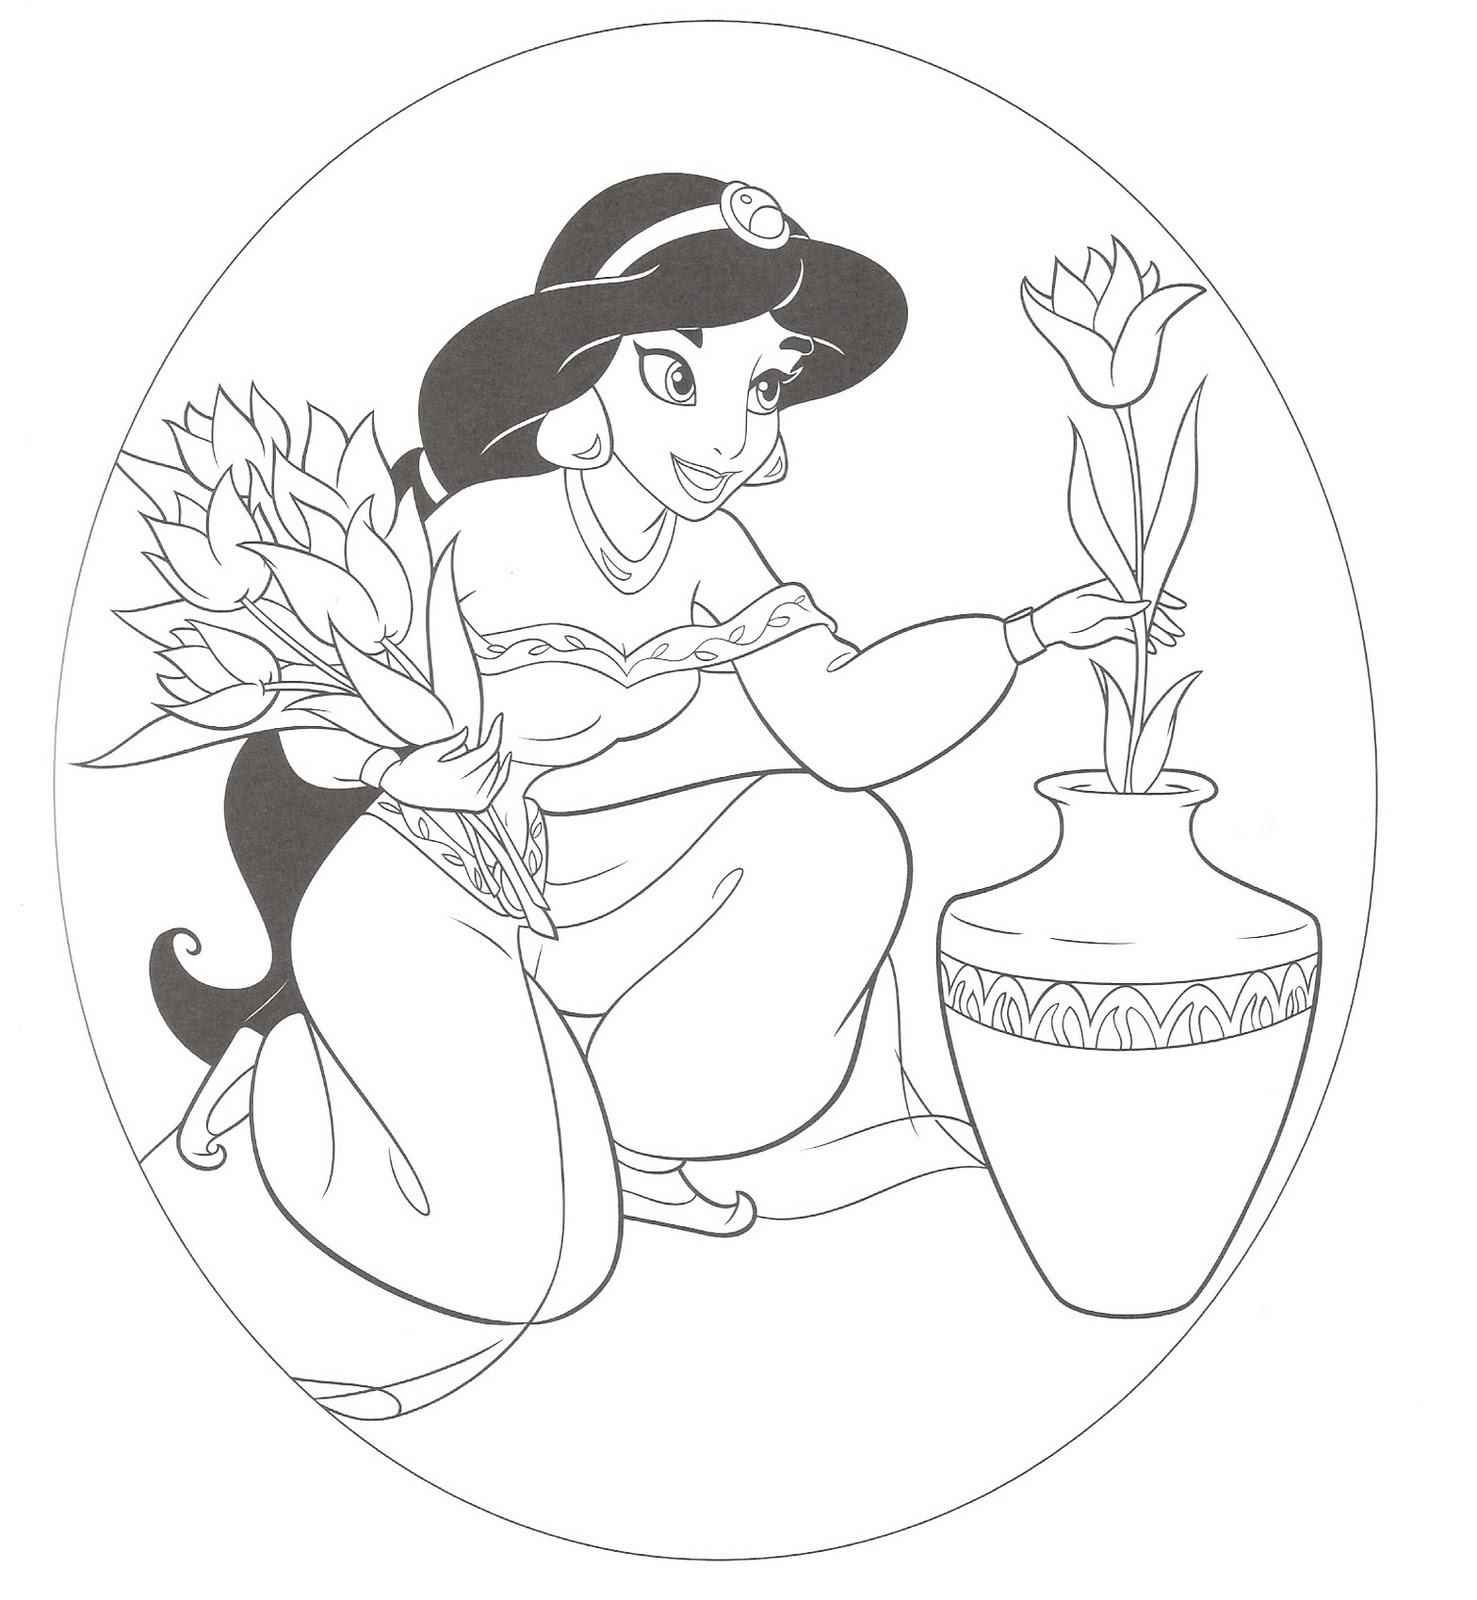 Disney Princess Coloring Pages For Kids Princess Printable Coloring Pages Free Coloring Sheets